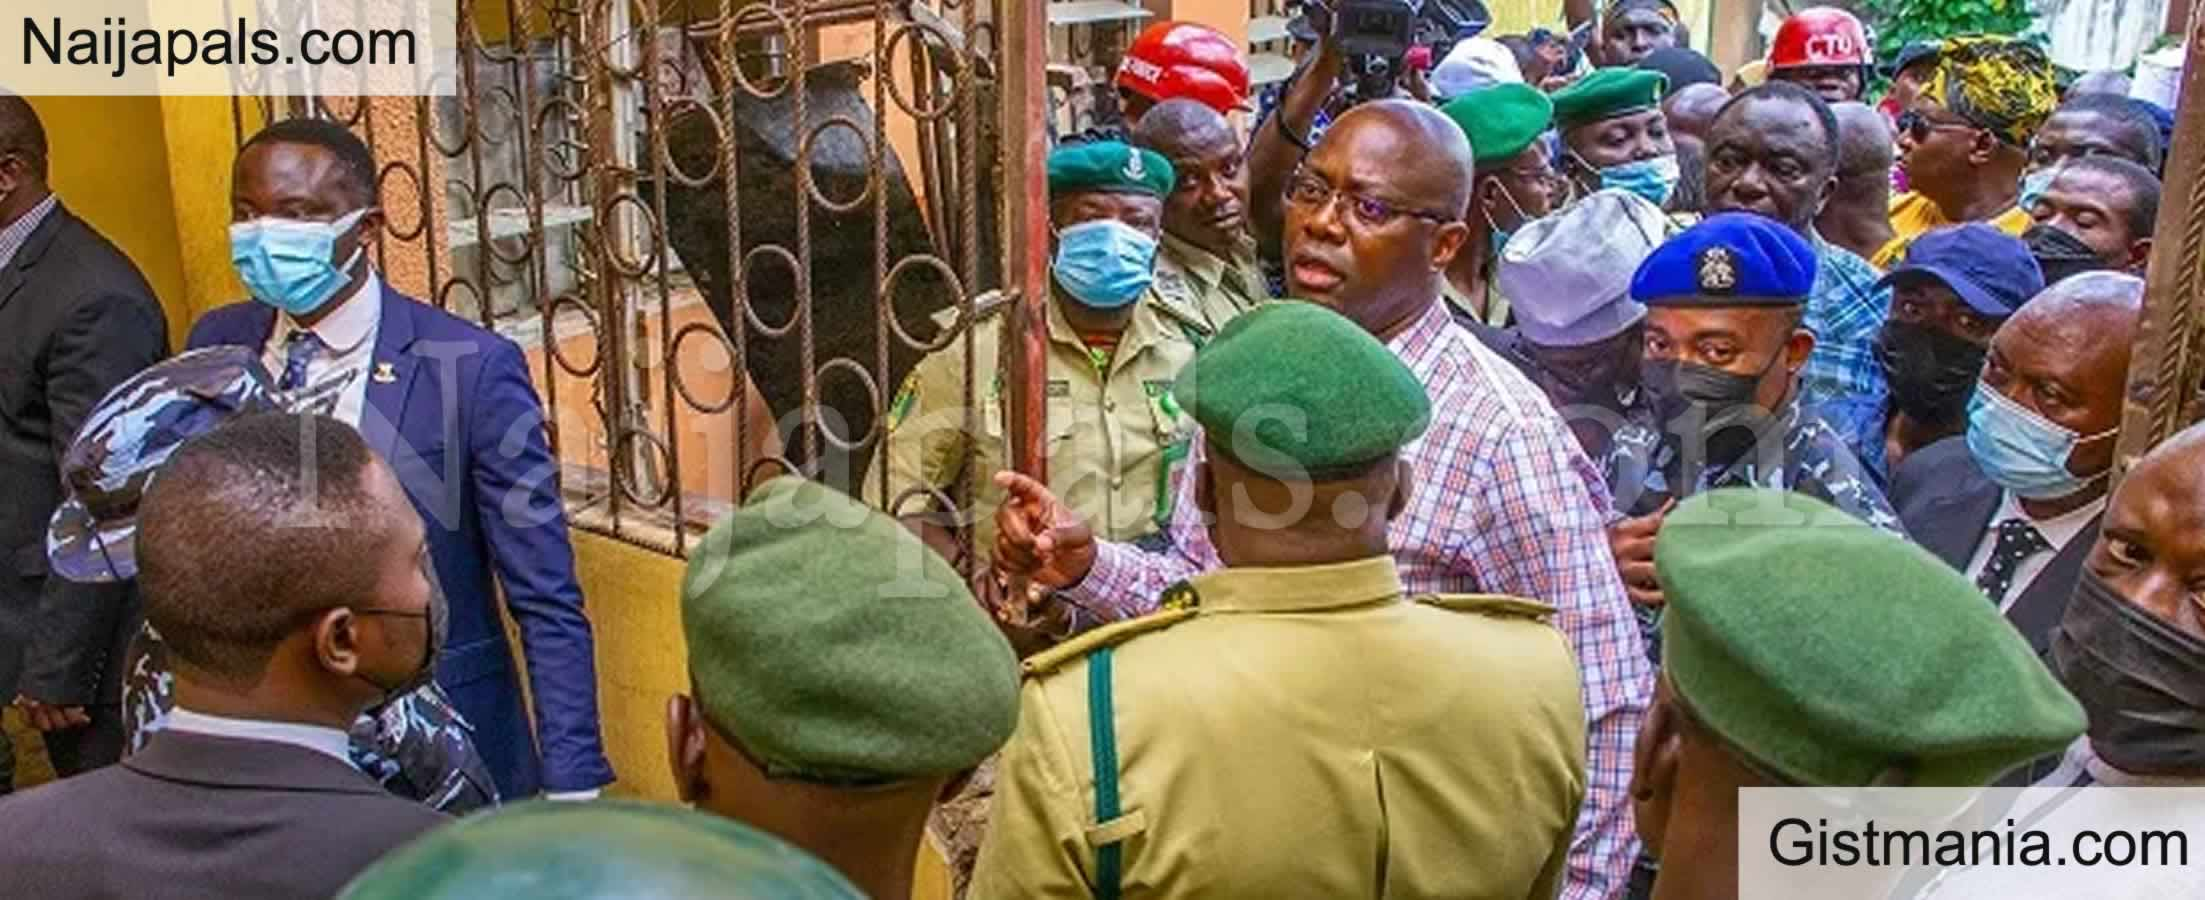 <img alt='.' class='lazyload' data-src='https://img.gistmania.com/emot/photo.png' /> <b>Makinde Orders Installation Of CCTV In Oyo Correctional Facilities After Prison Break</b> (Photos)